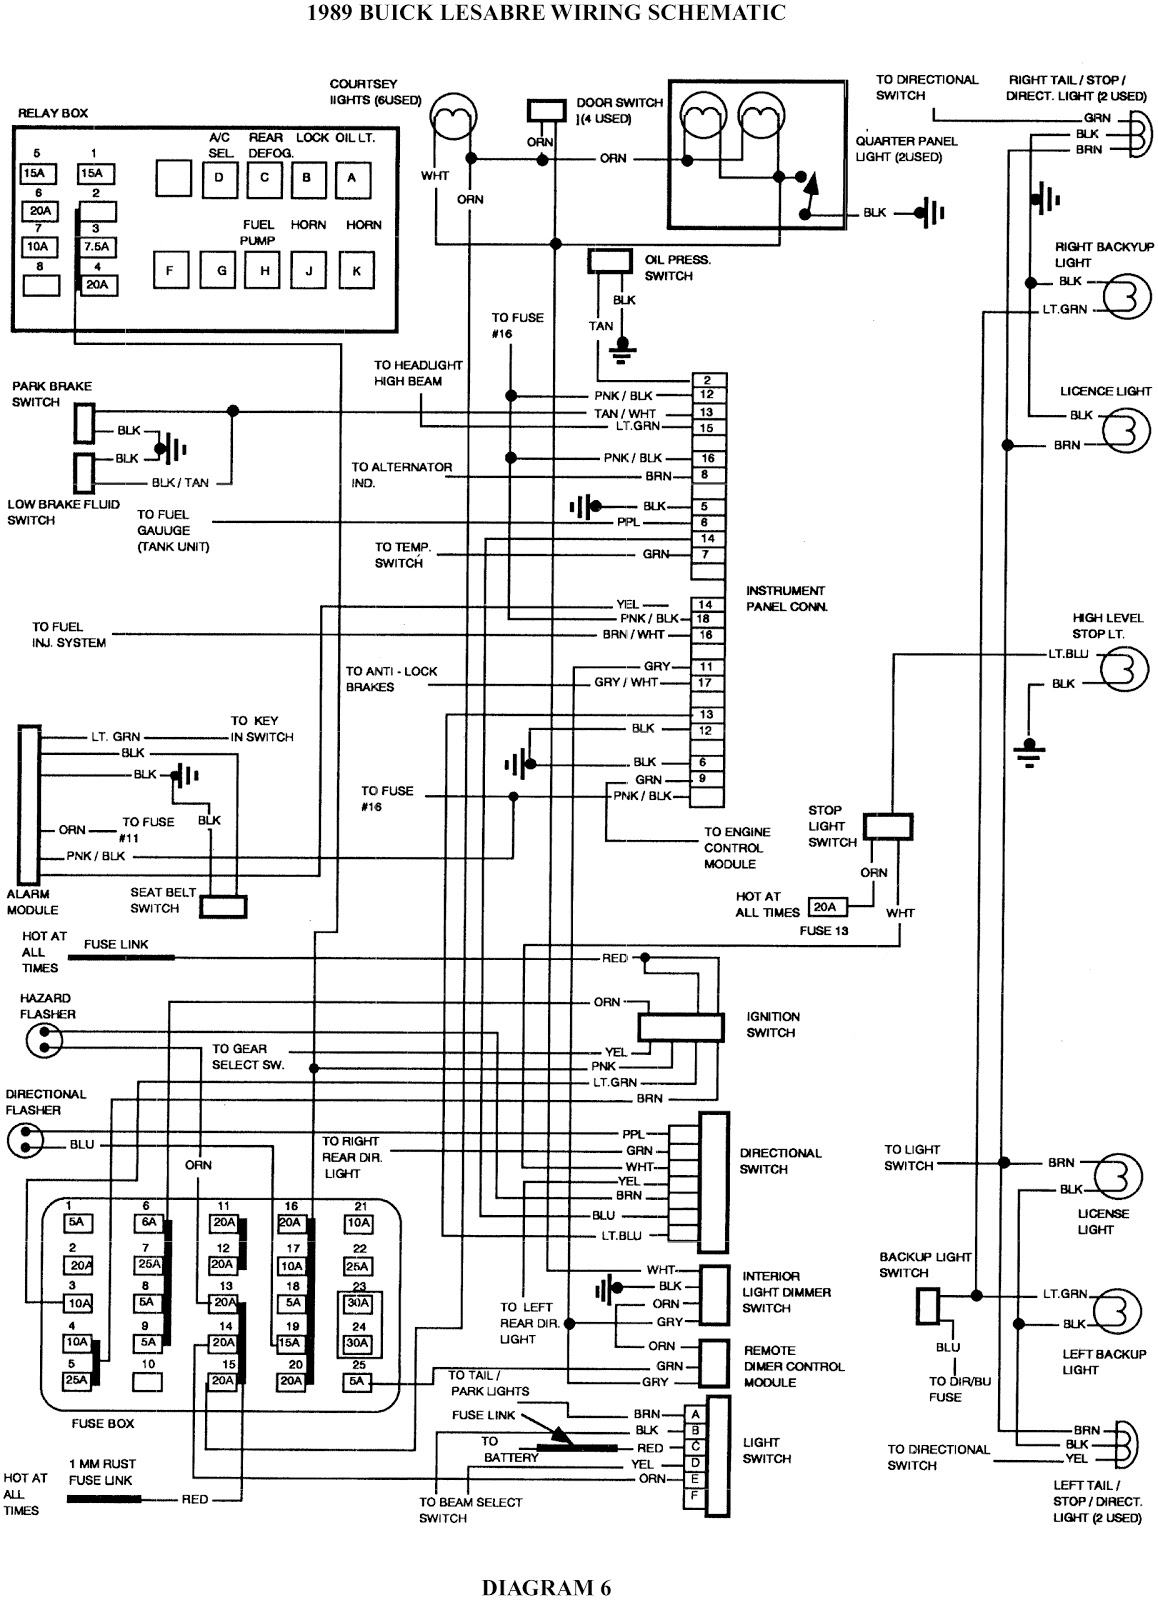 bcm wiring diagram for a 96 thunderbird